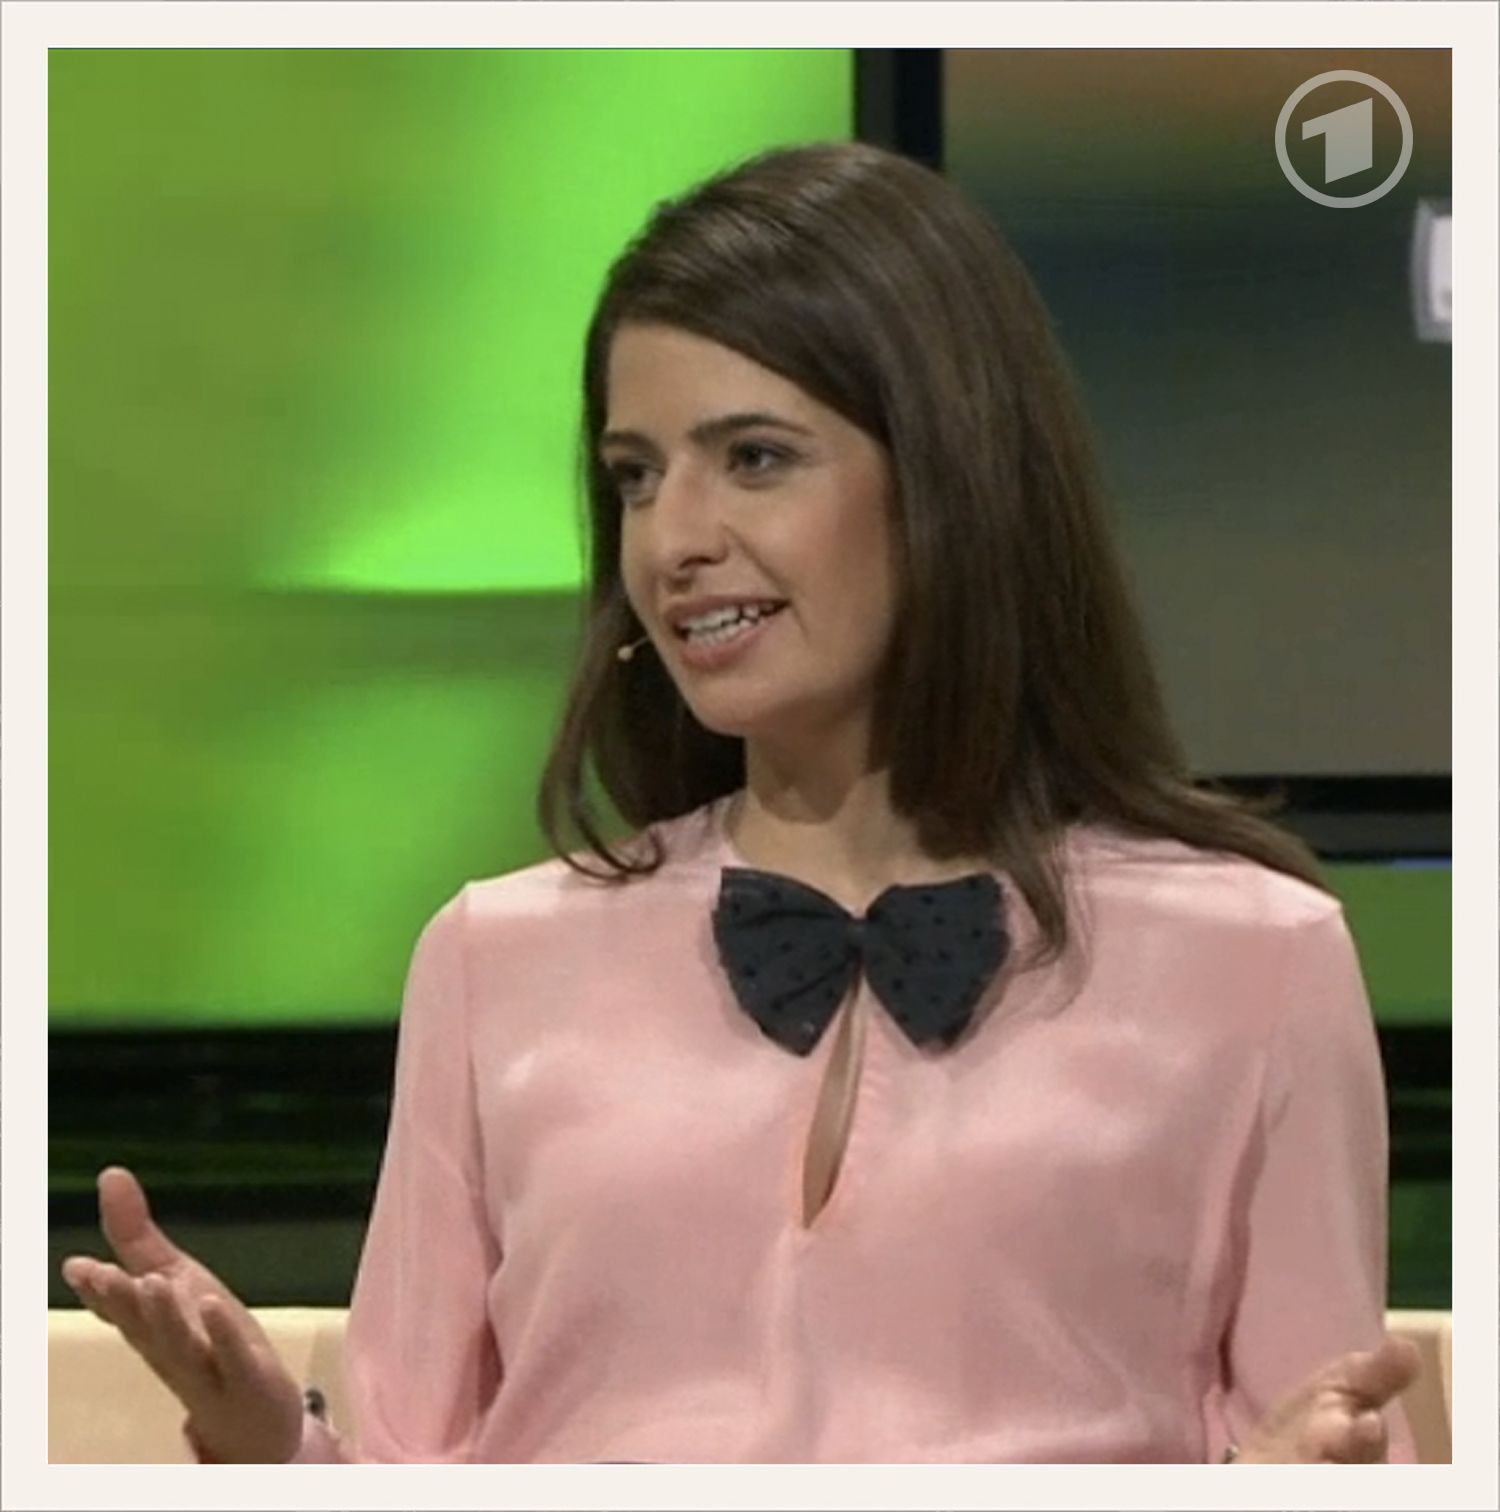 Just gorgeous! Linda Zervakis wearing our blouse in ARD